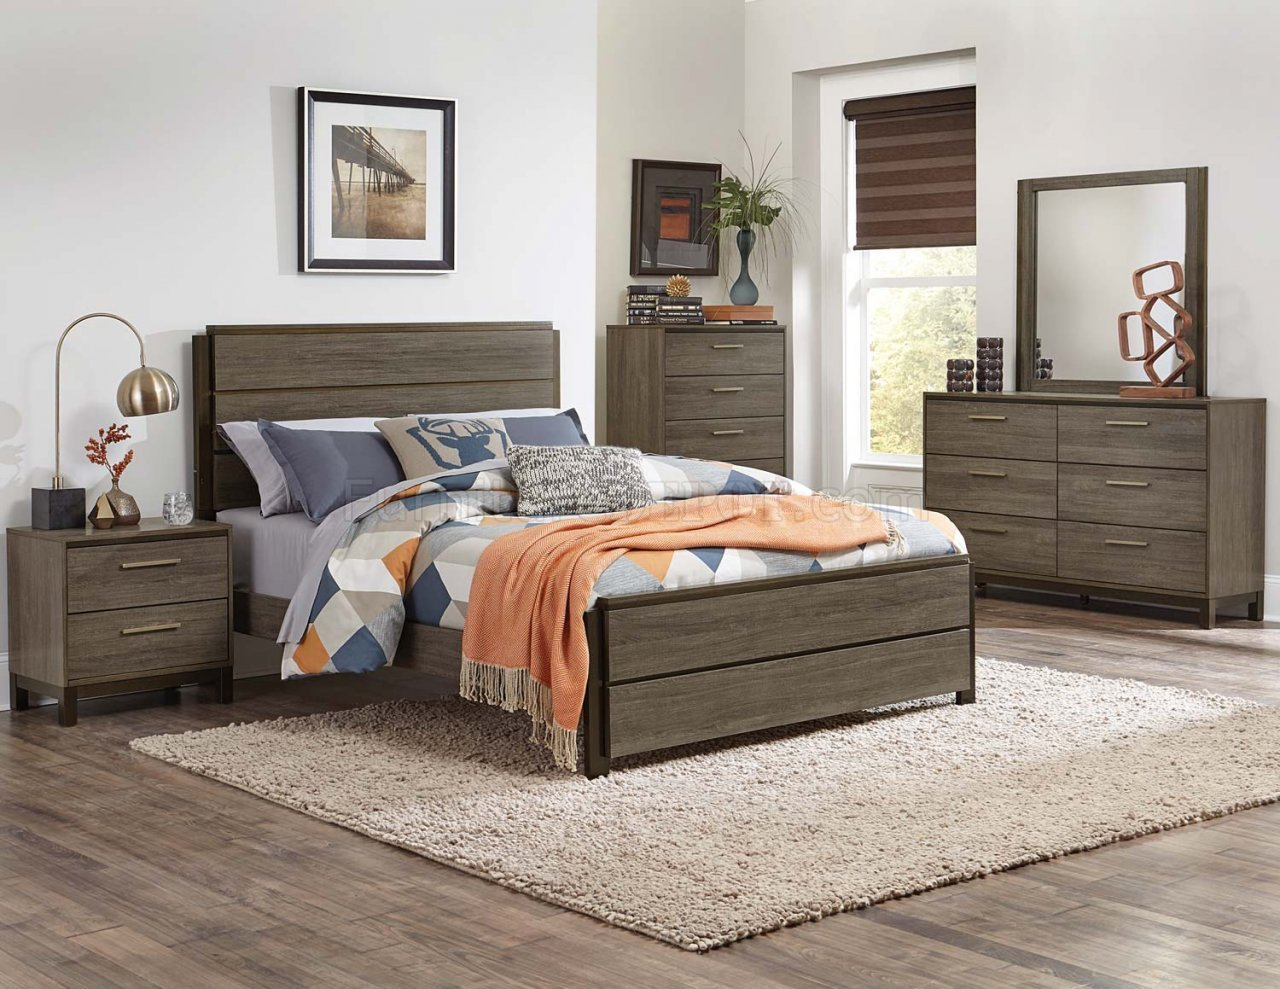 Best Vestavia Bedroom Set 1936 In Dark Brown By Homelegance W With Pictures